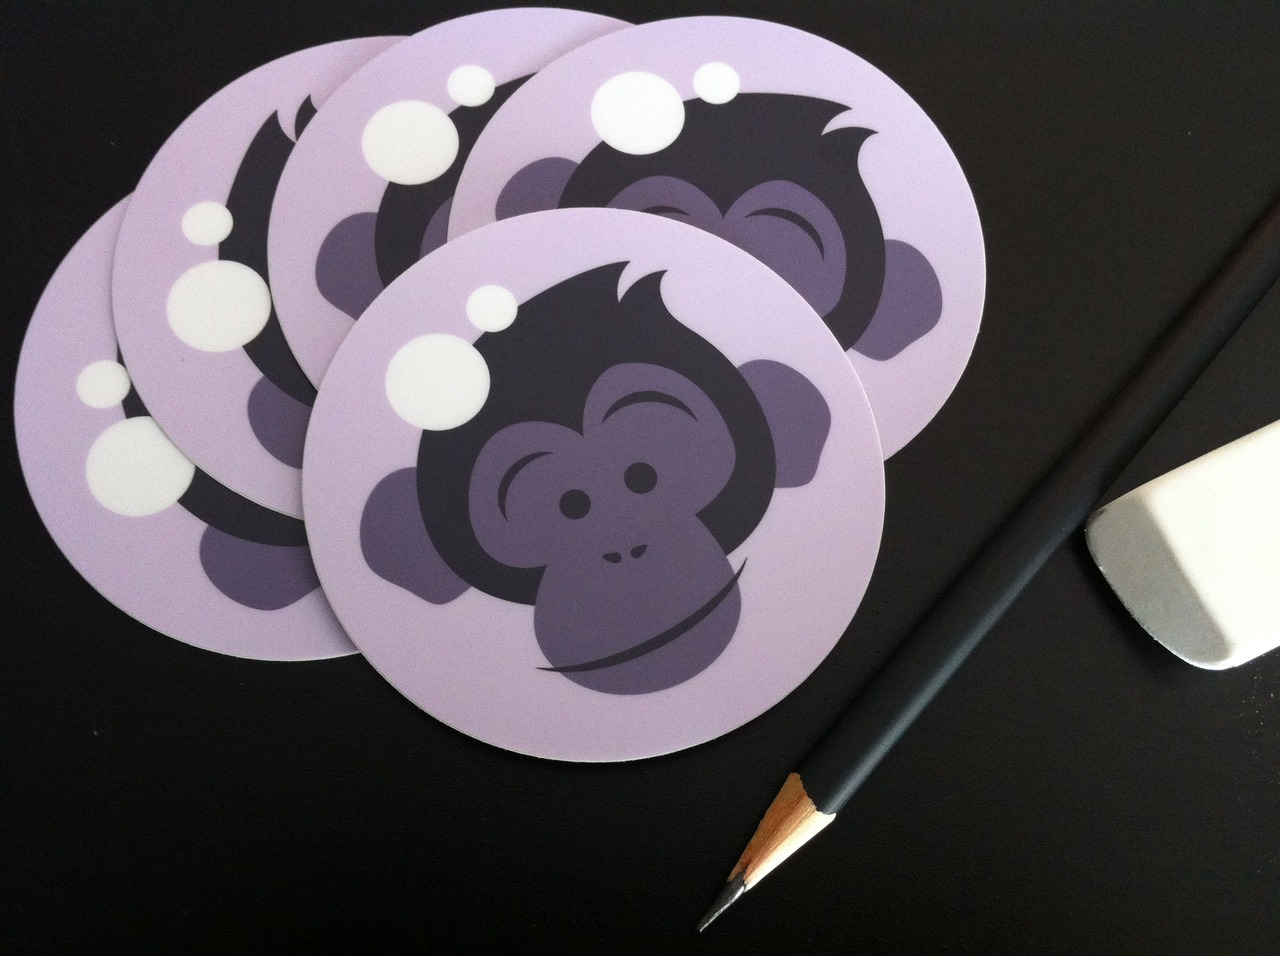 BOOM. Space Chimp stickers. This is how we rep our brand.